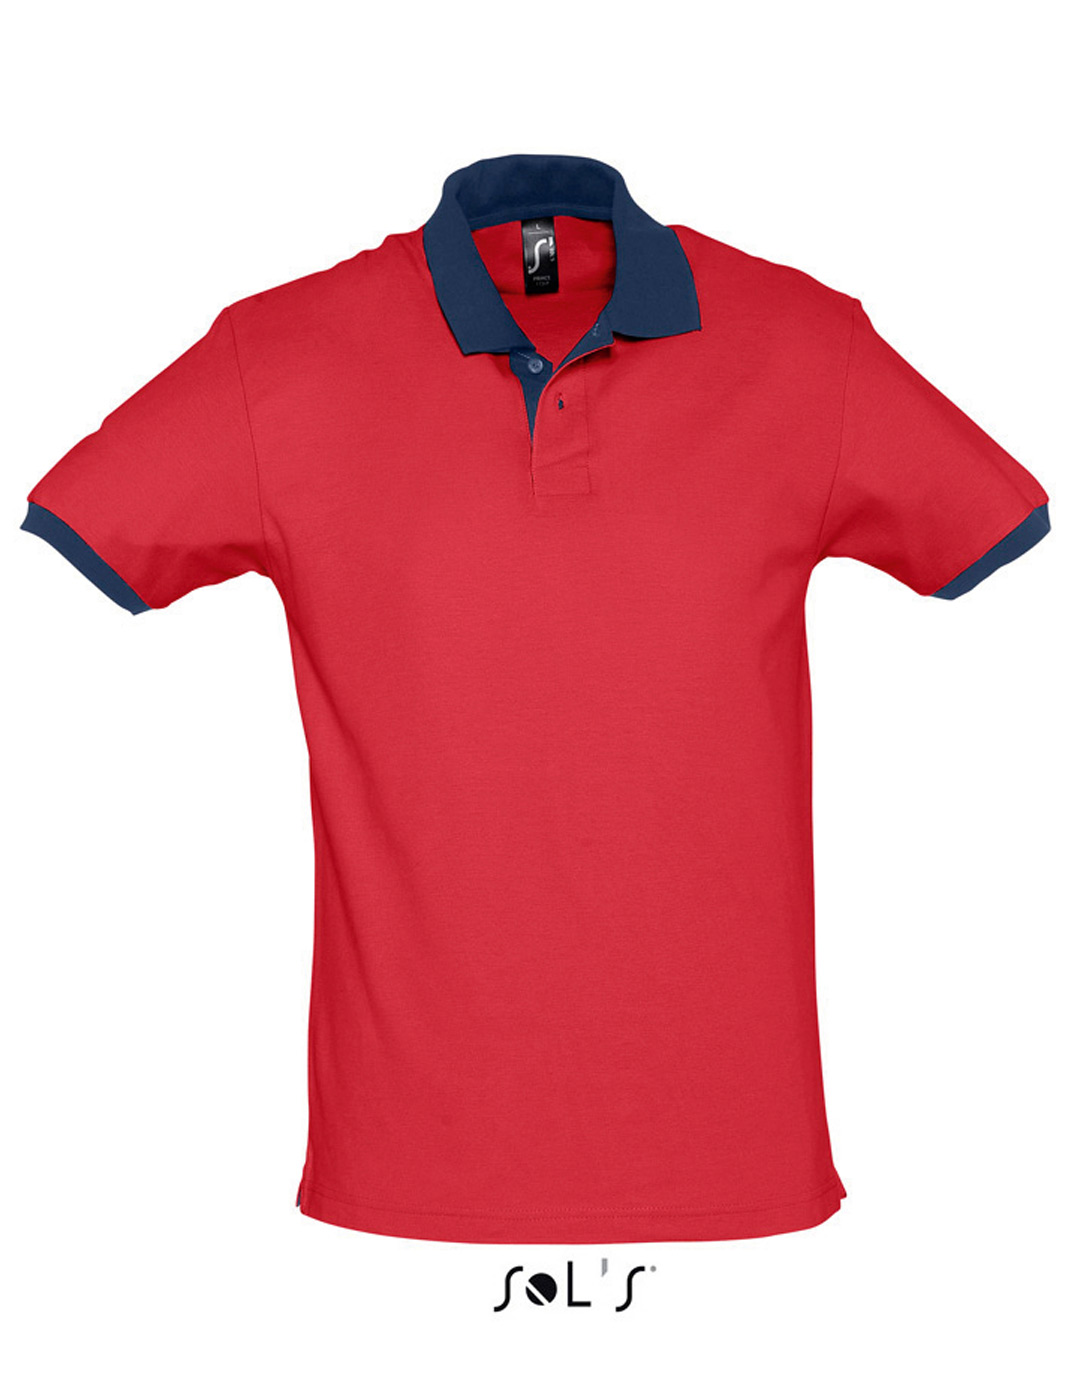 Prince 11369 red french navy a